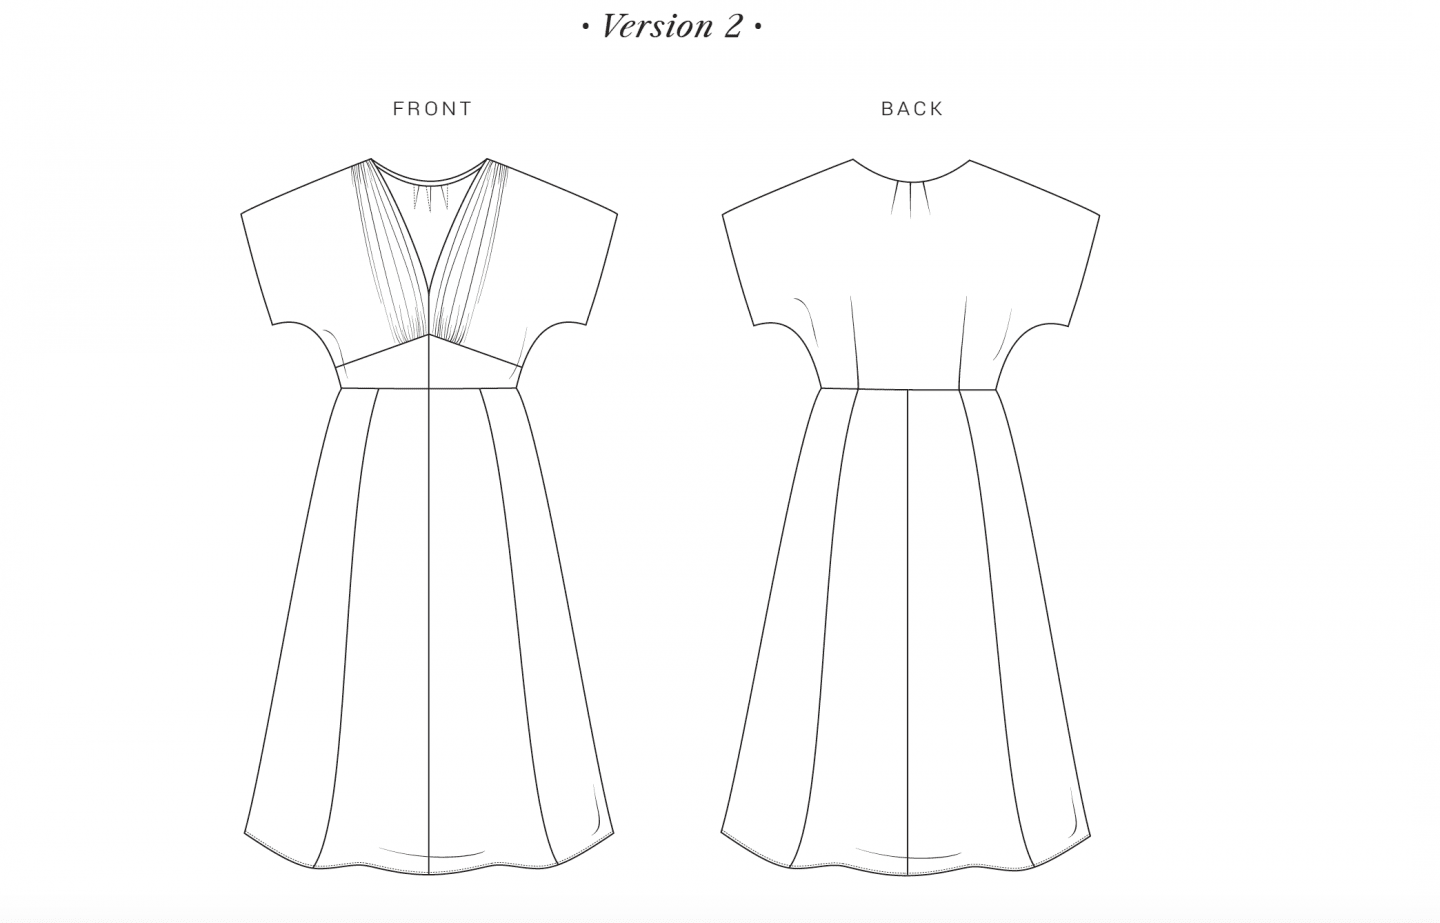 Image of line drawing for the Myrna dress, version 2, a longer version